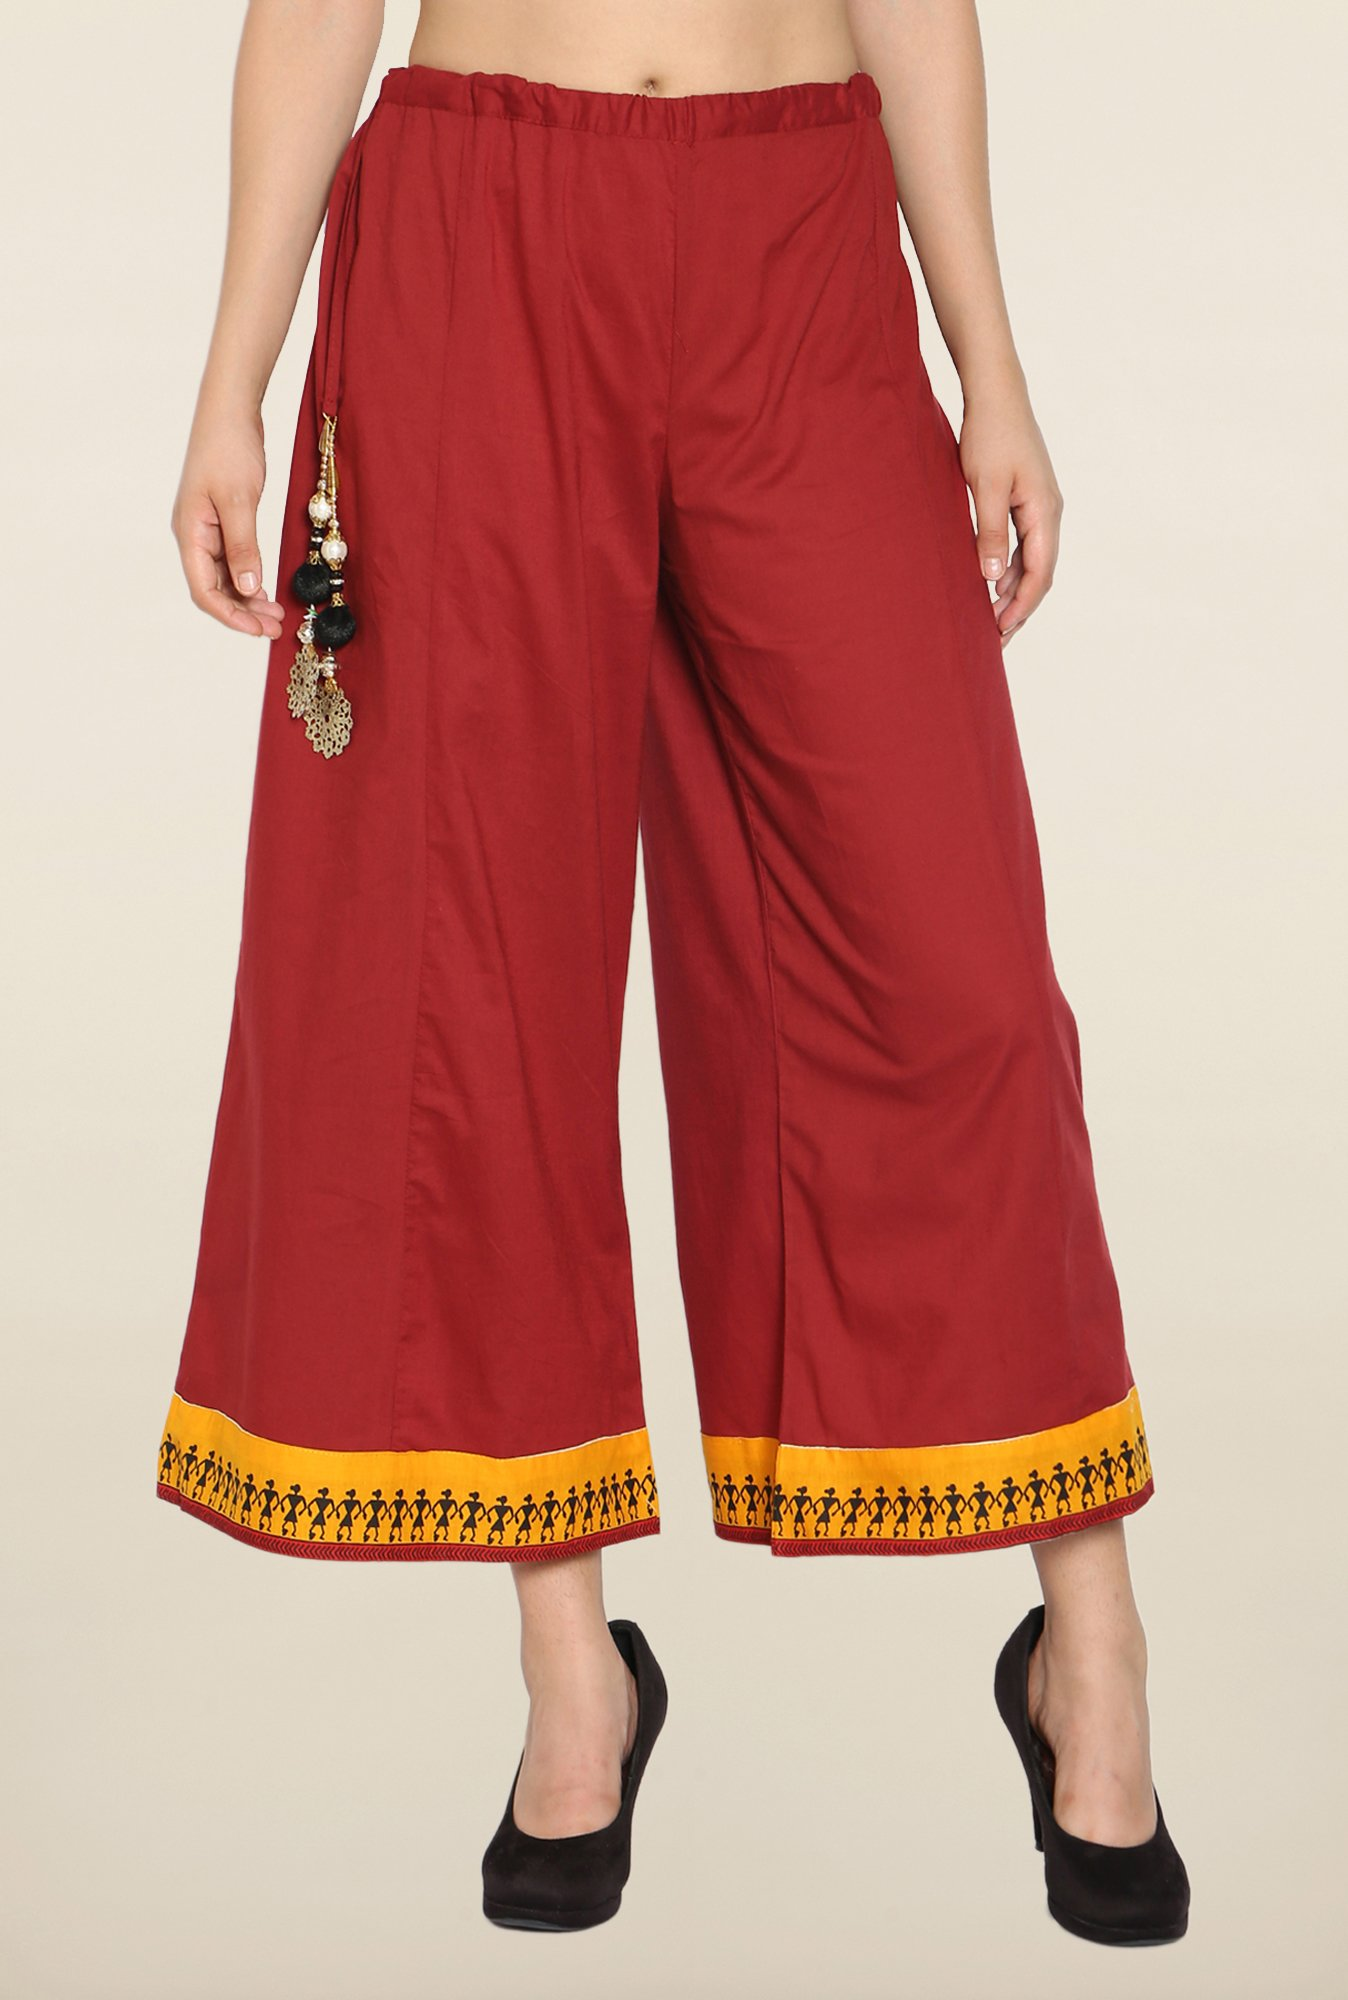 Soch Maroon Cropped Palazzo